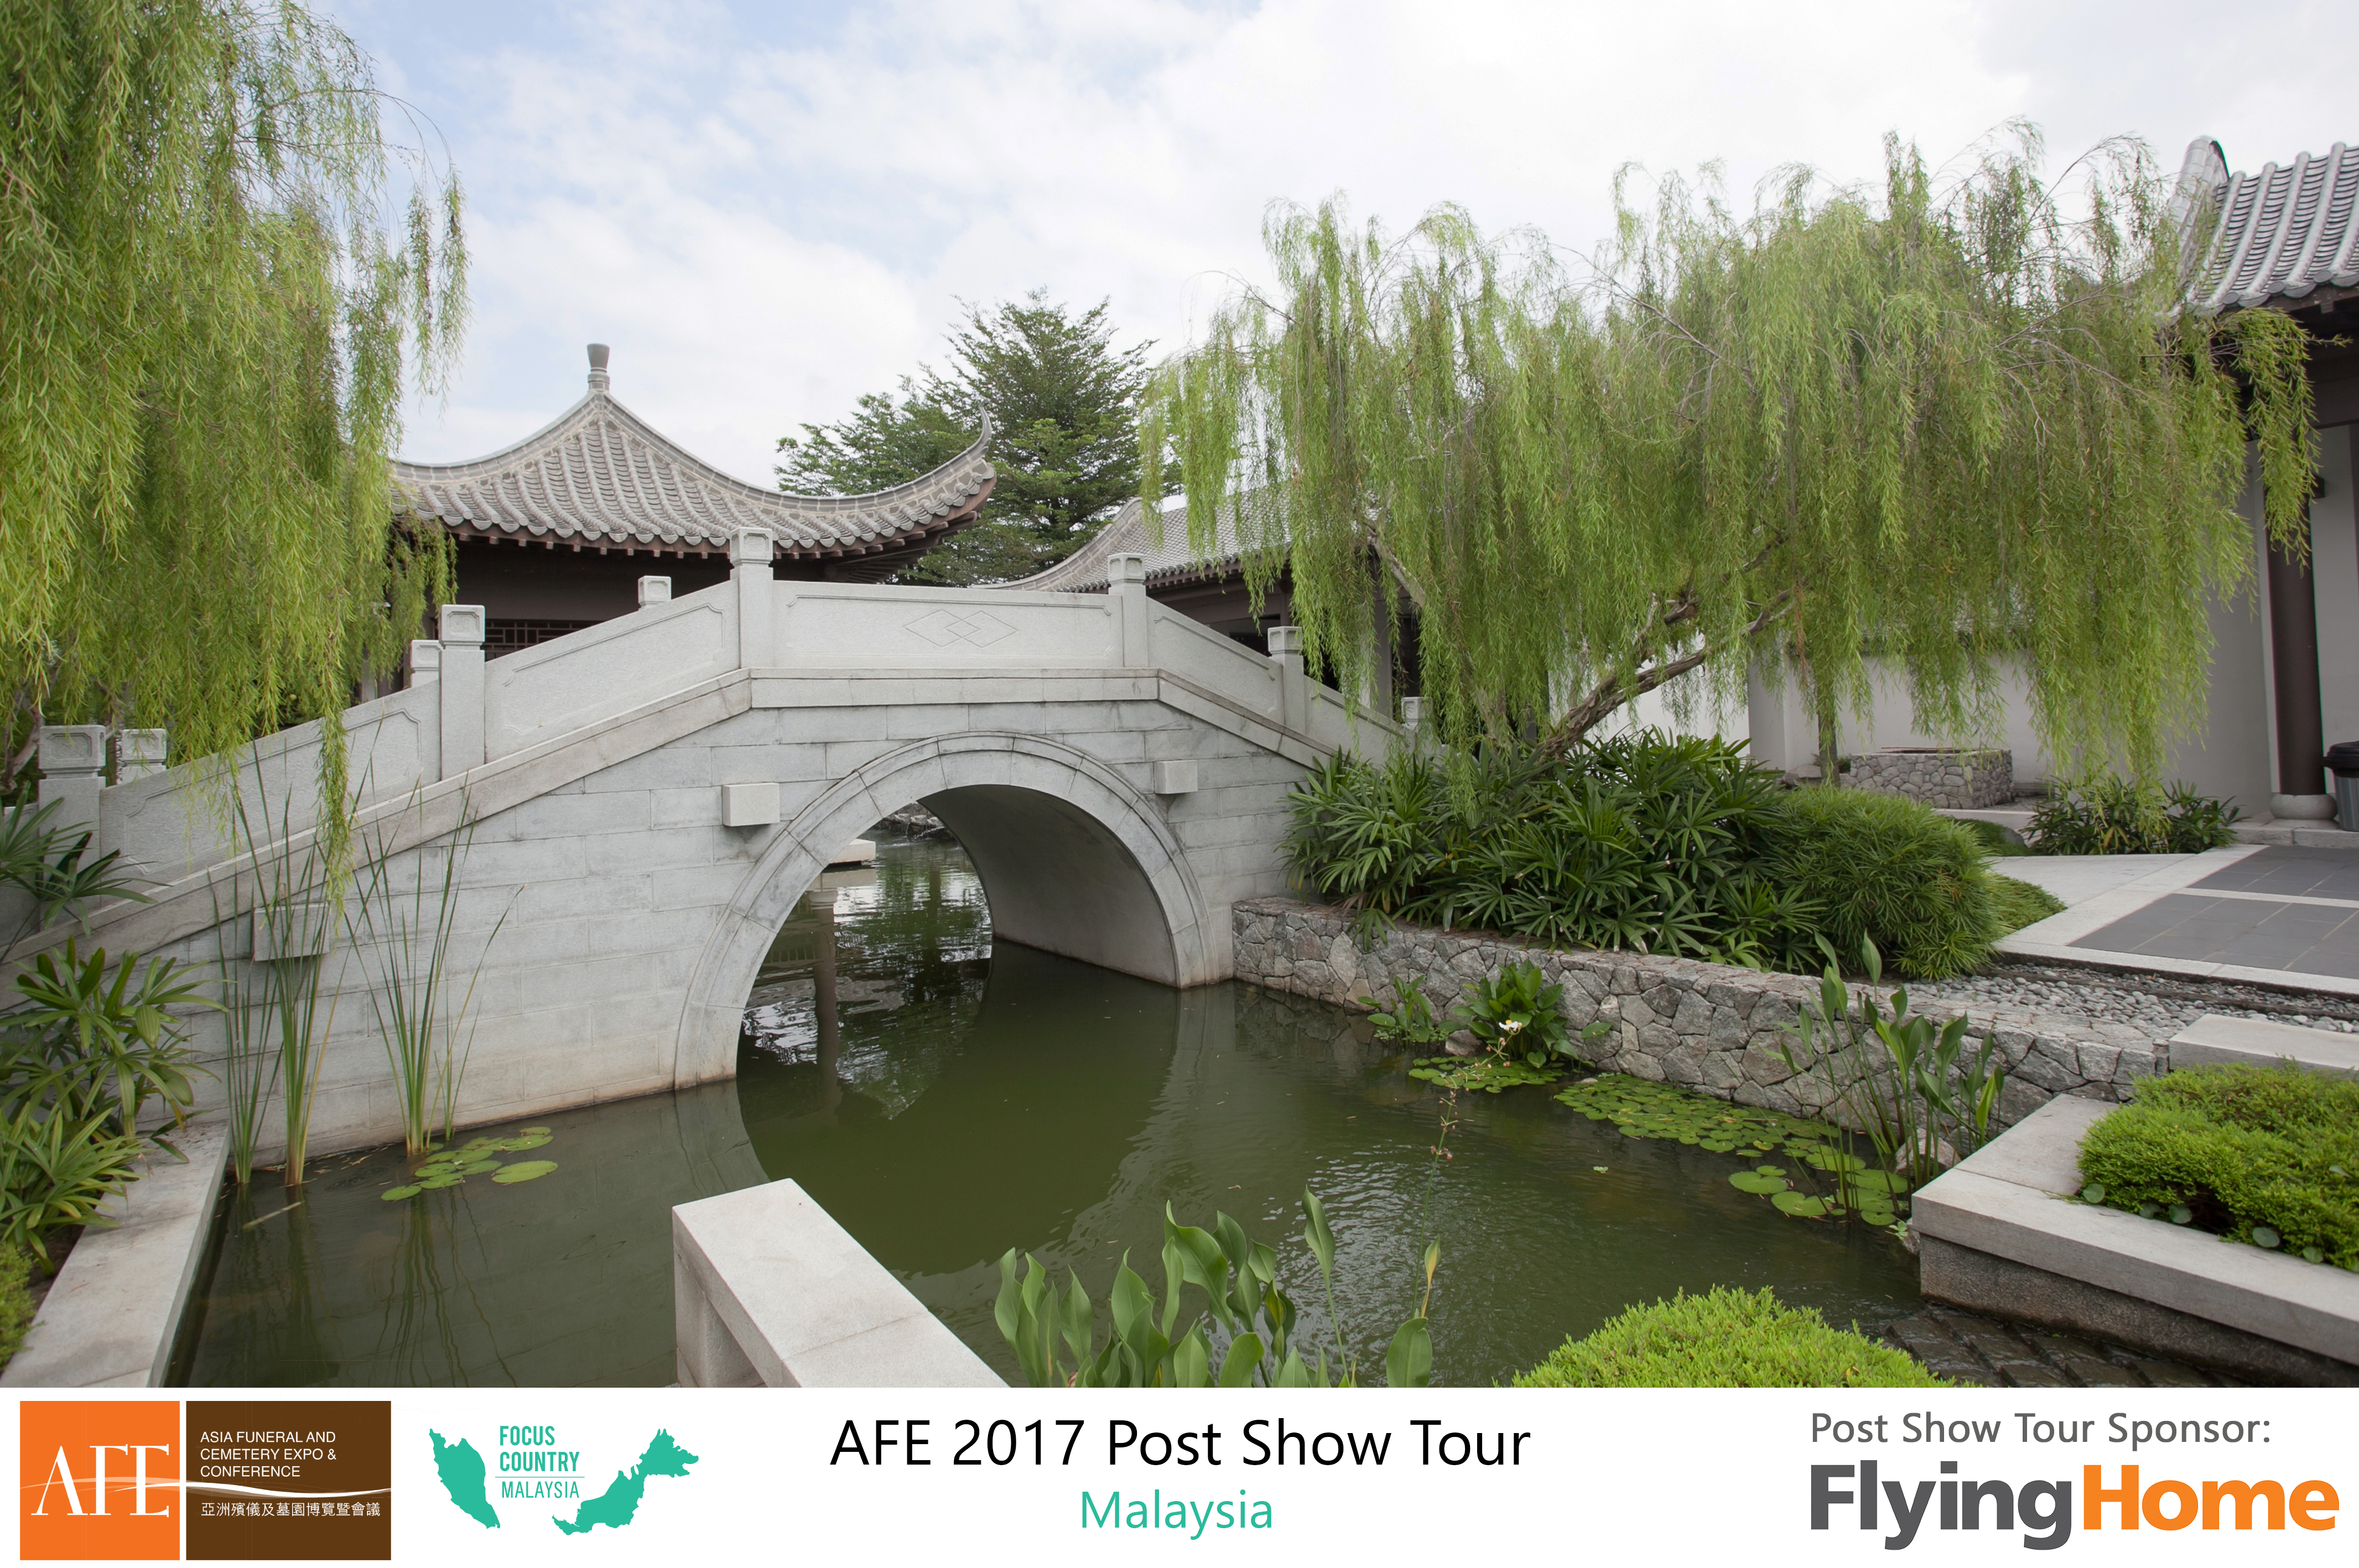 AFE Post Show Tour 2017 Day 3 -10